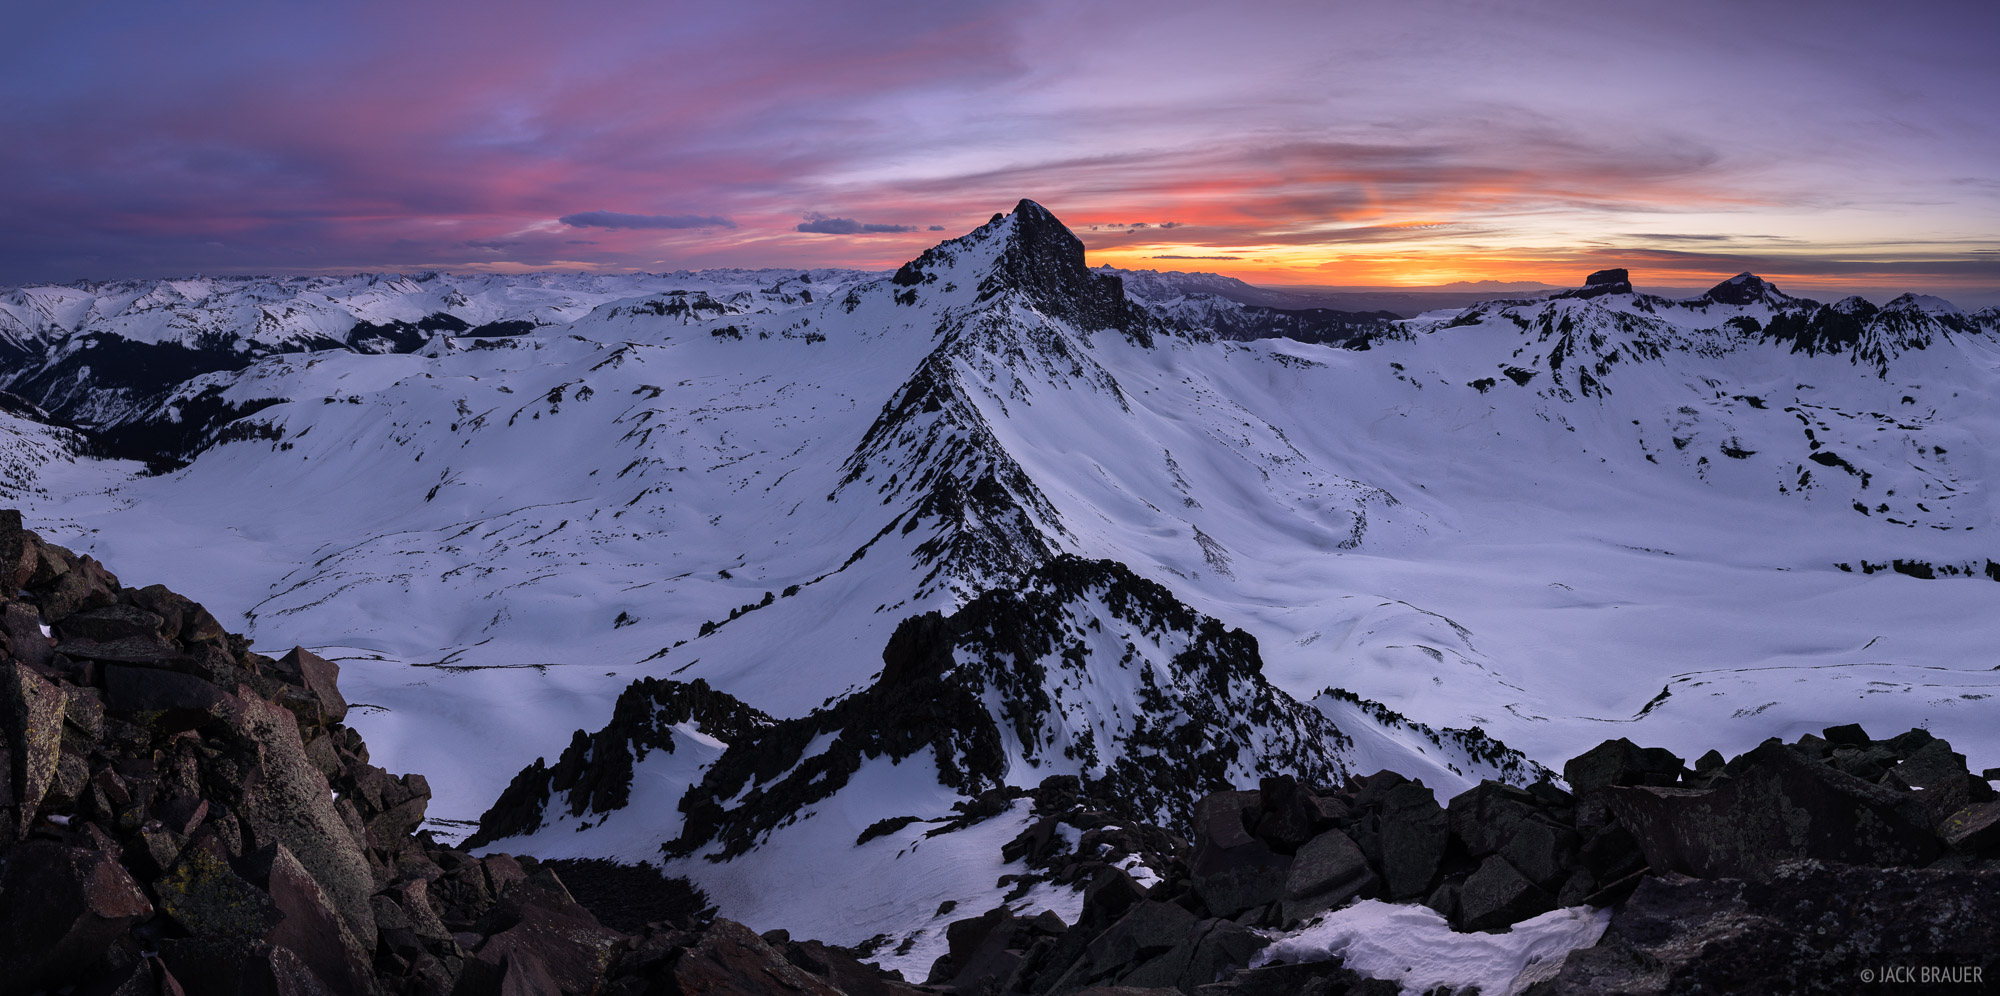 Colorado,San Juan Mountains,Uncompahgre Wilderness,Wetterhorn Peak, sunset, panorama, photo